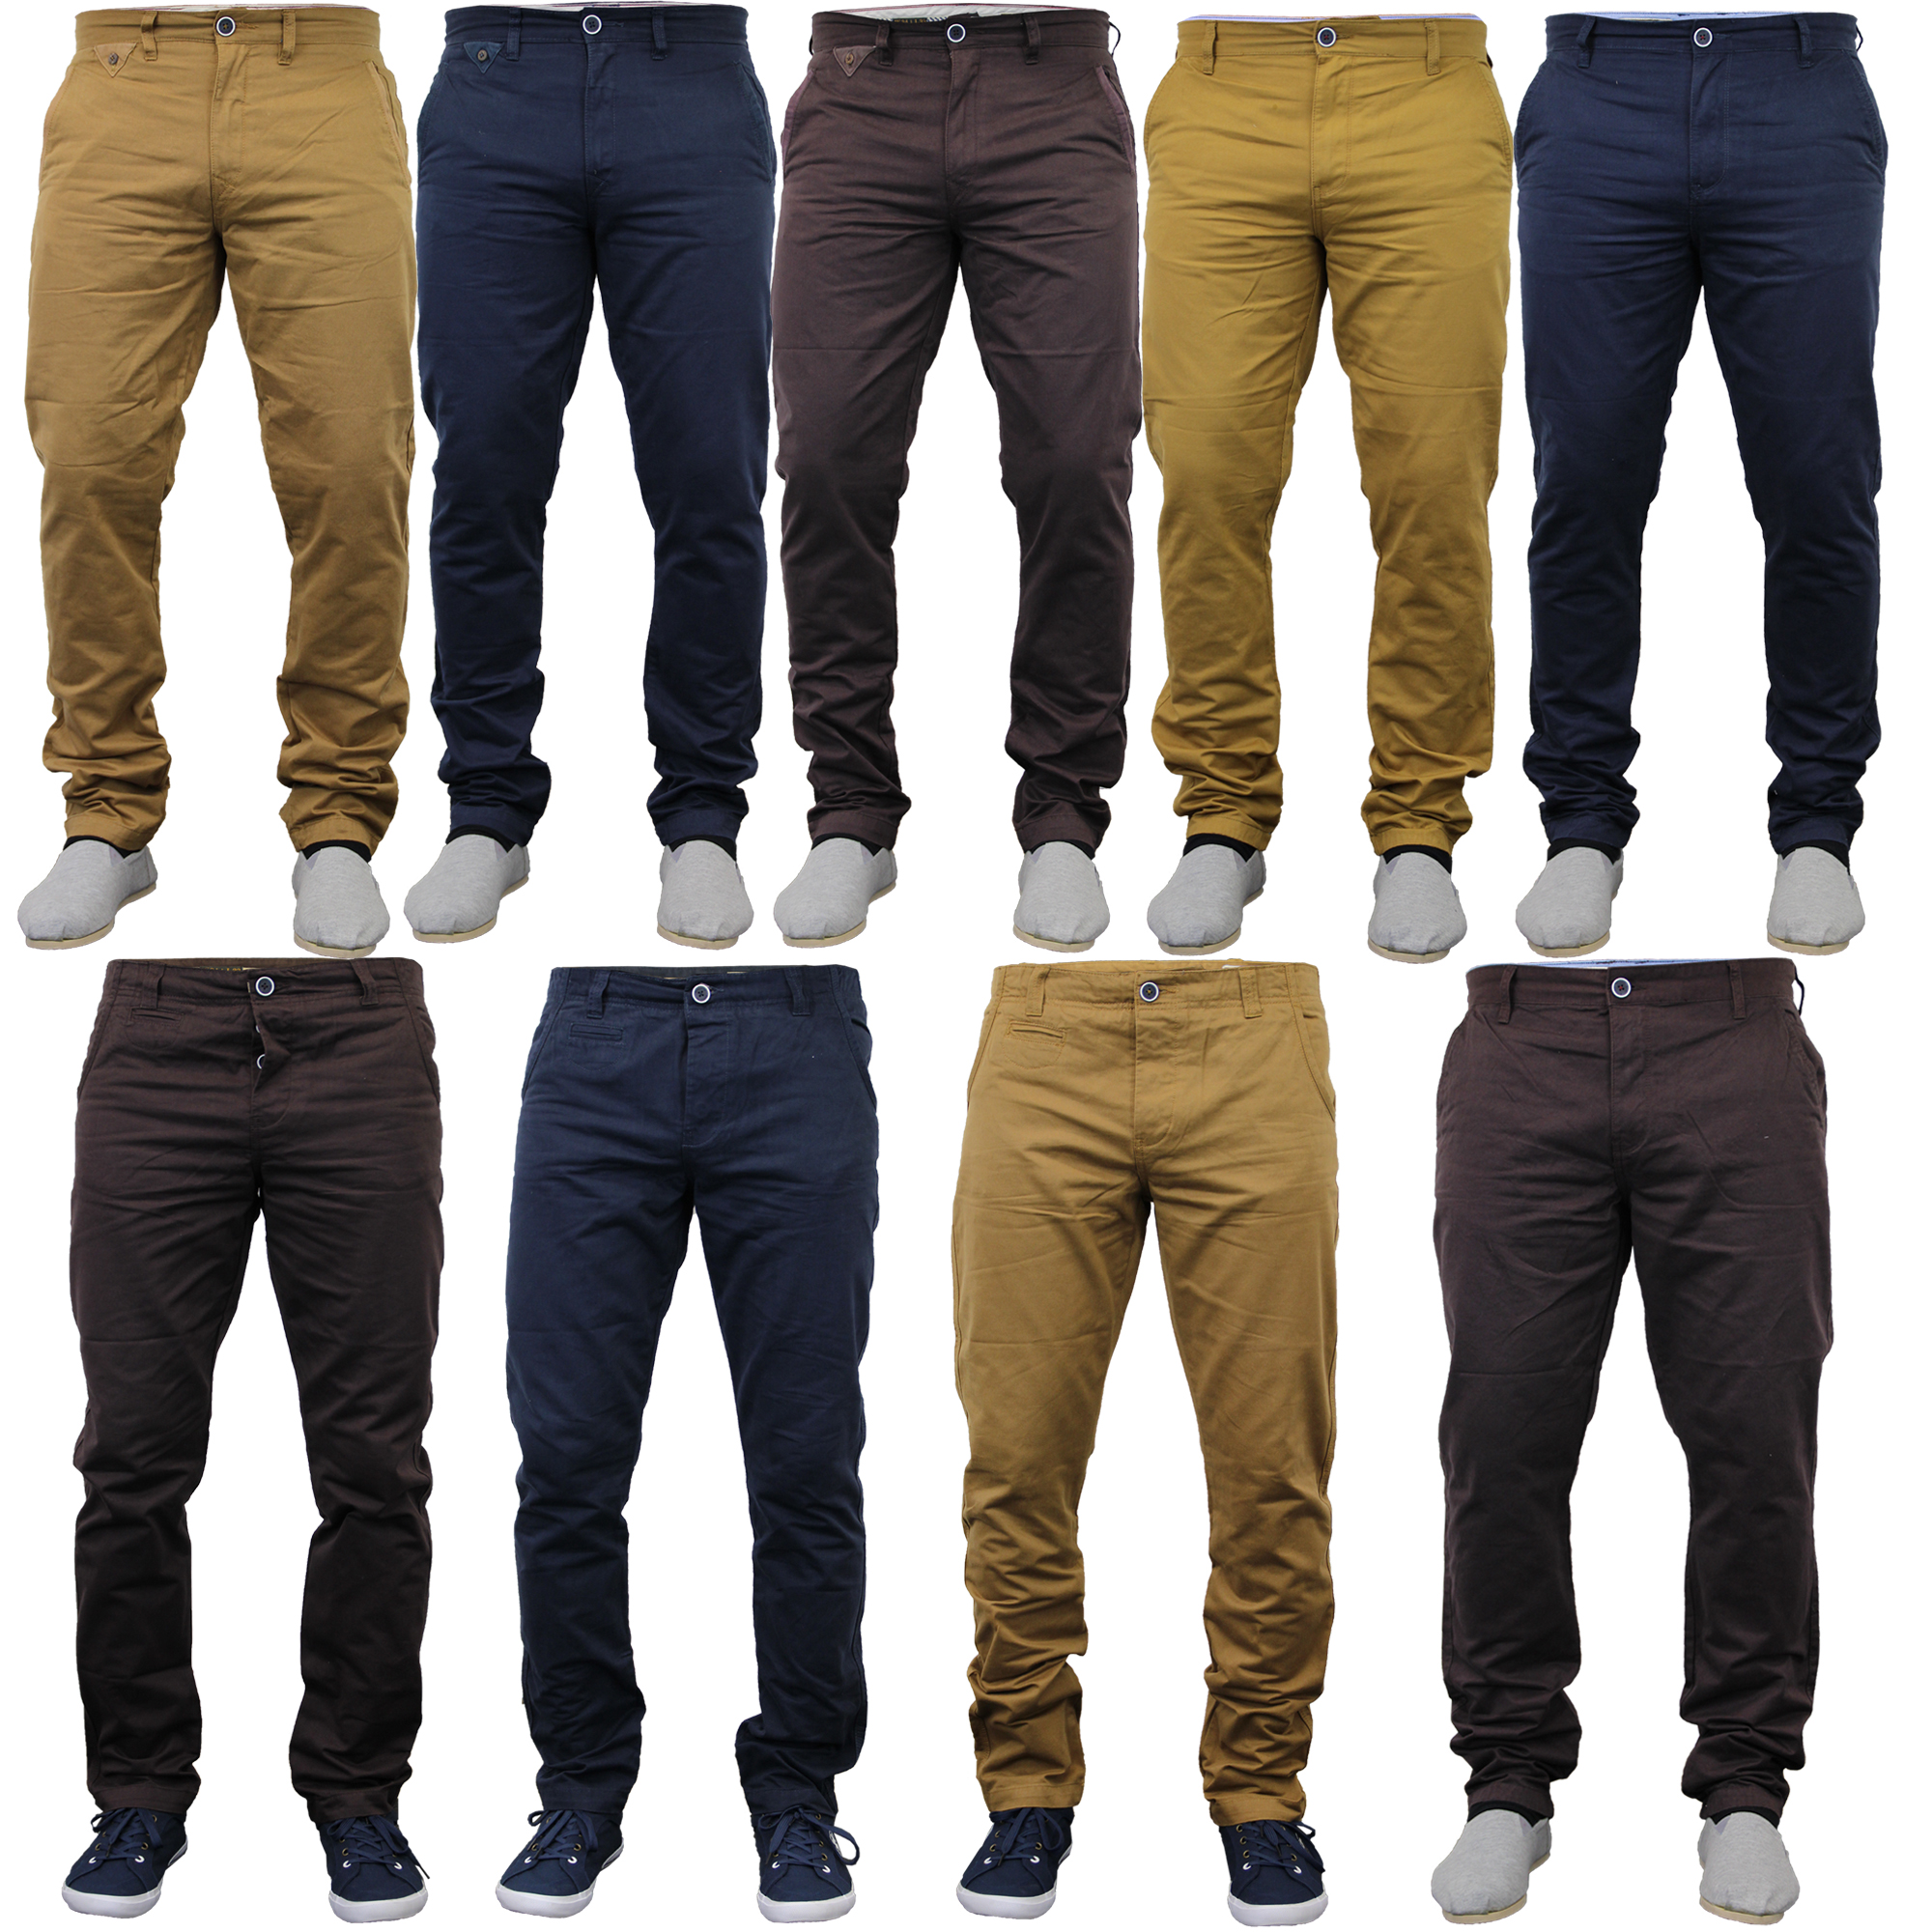 Mens Chino Jeans Pants Straight Leg Bonds Stallion Trousers Bottoms ... 673c725a4